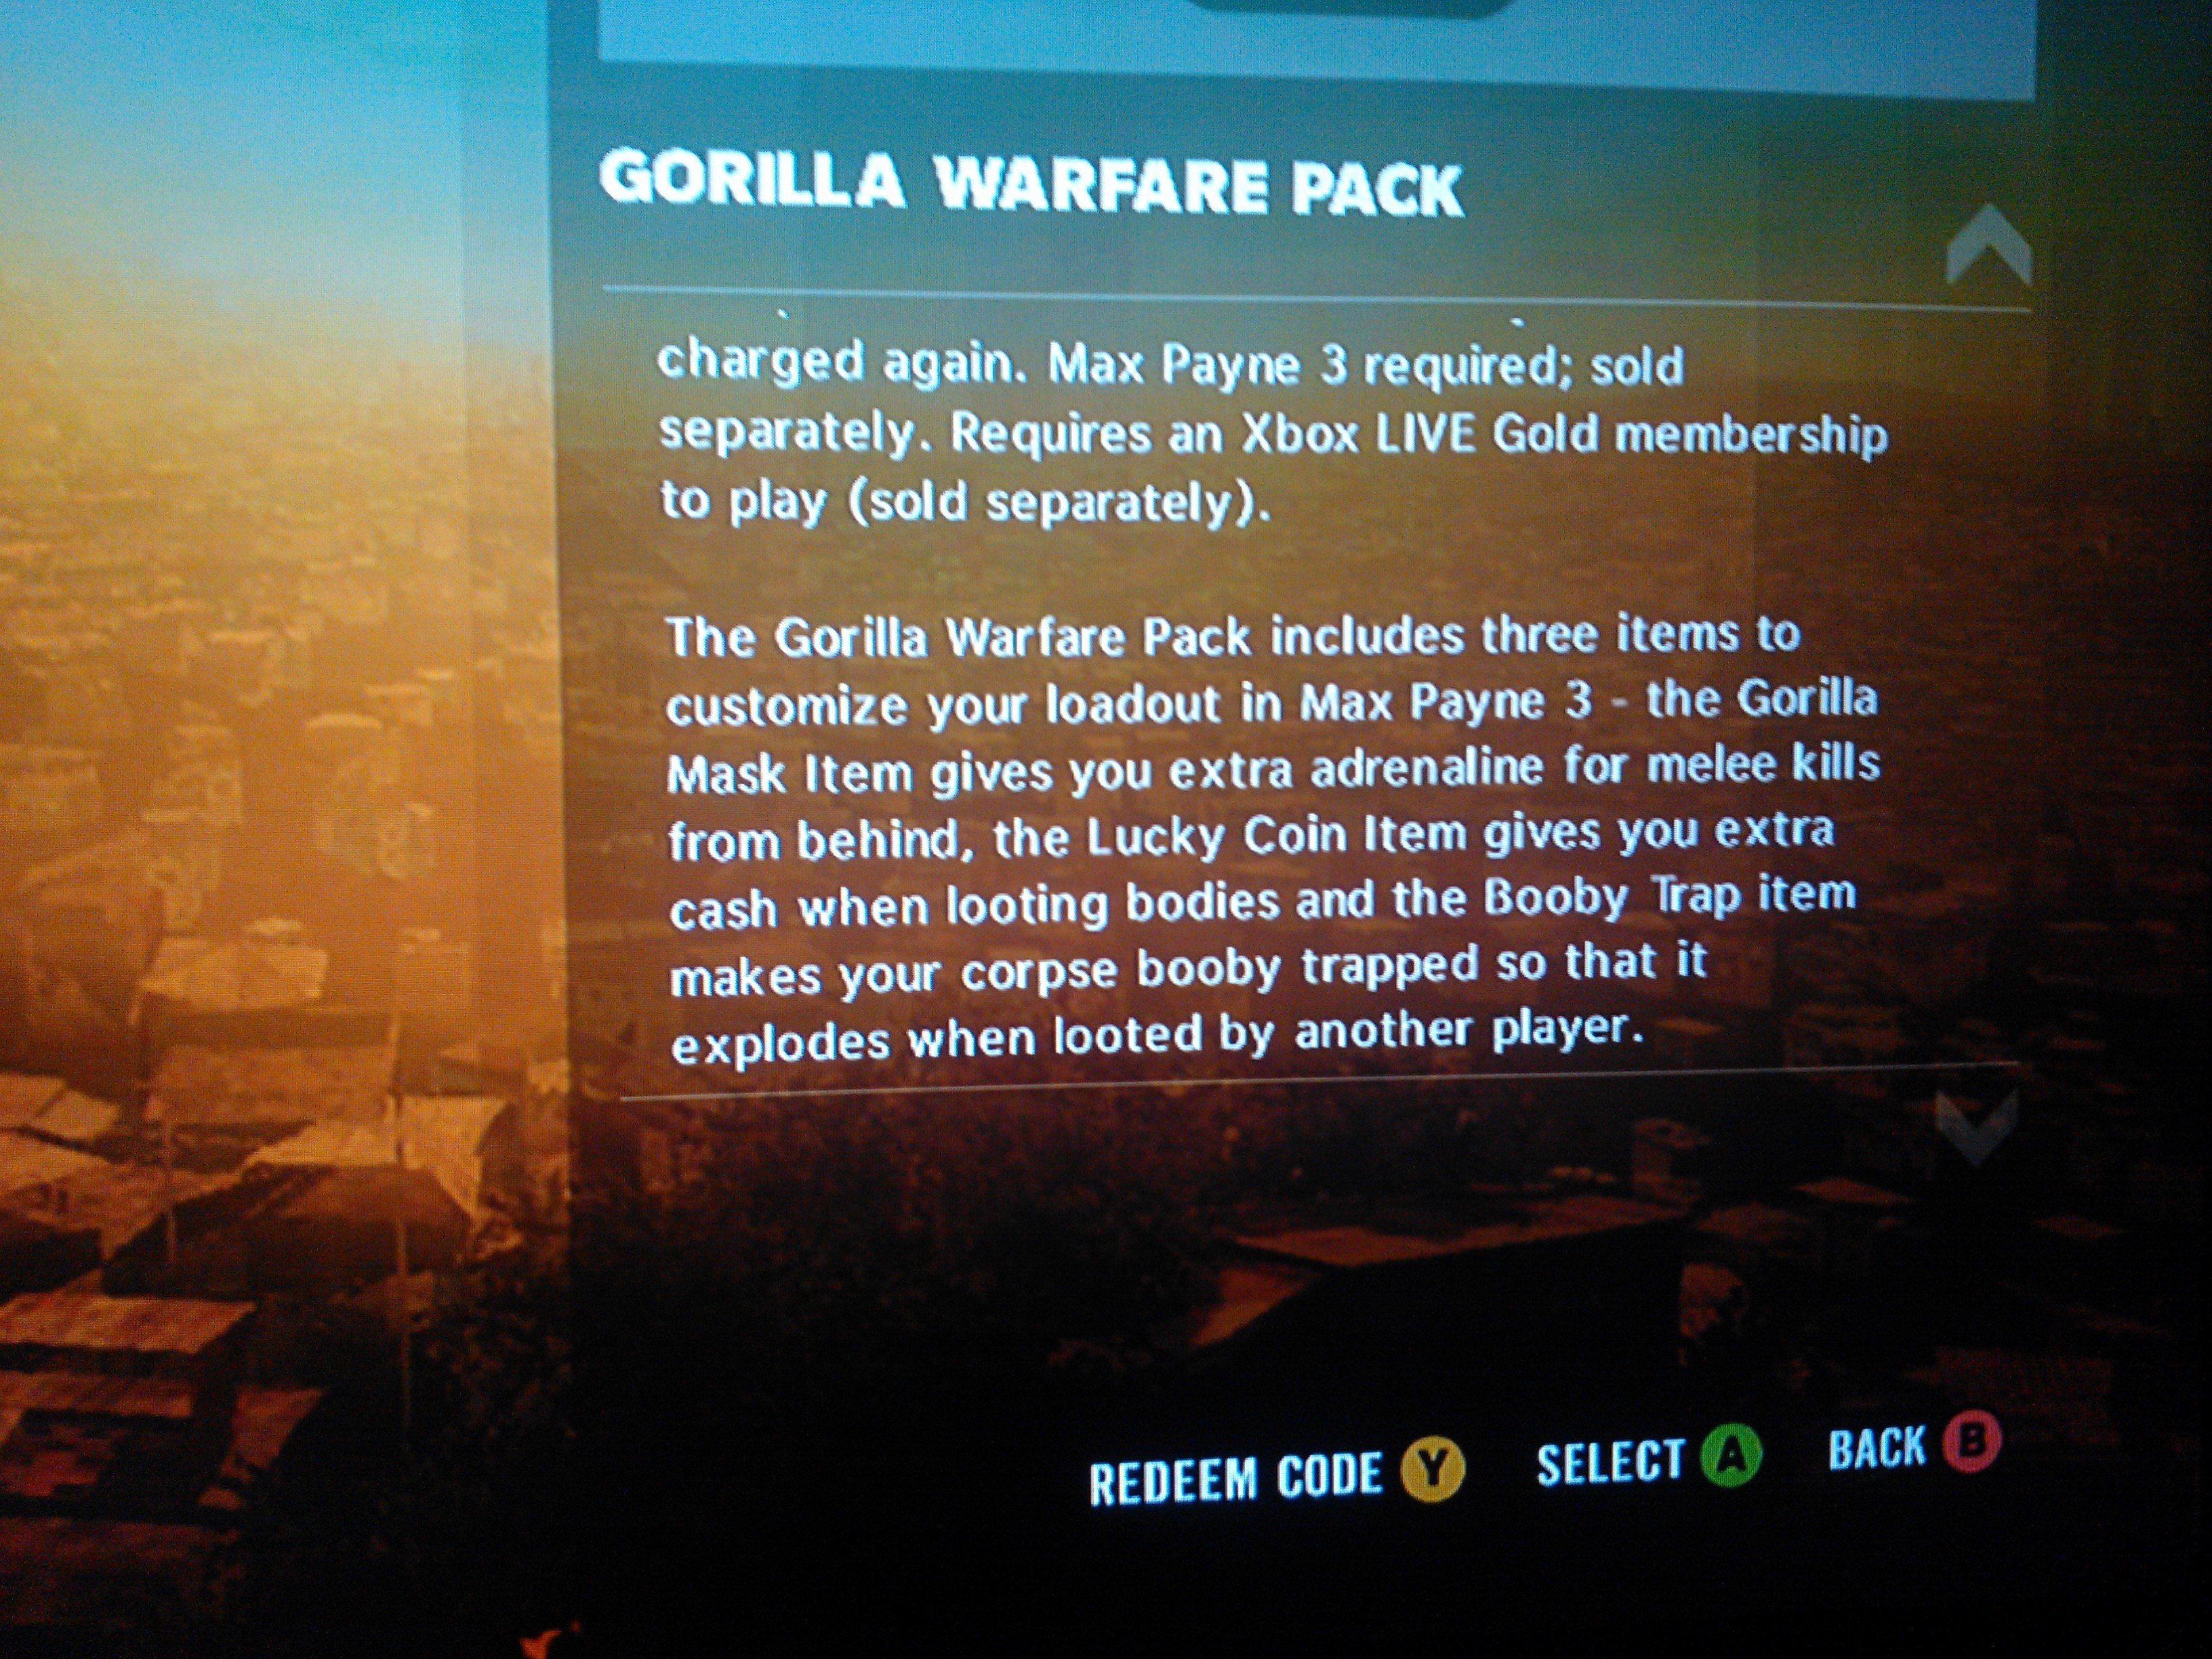 max payne 3 activation code already in use